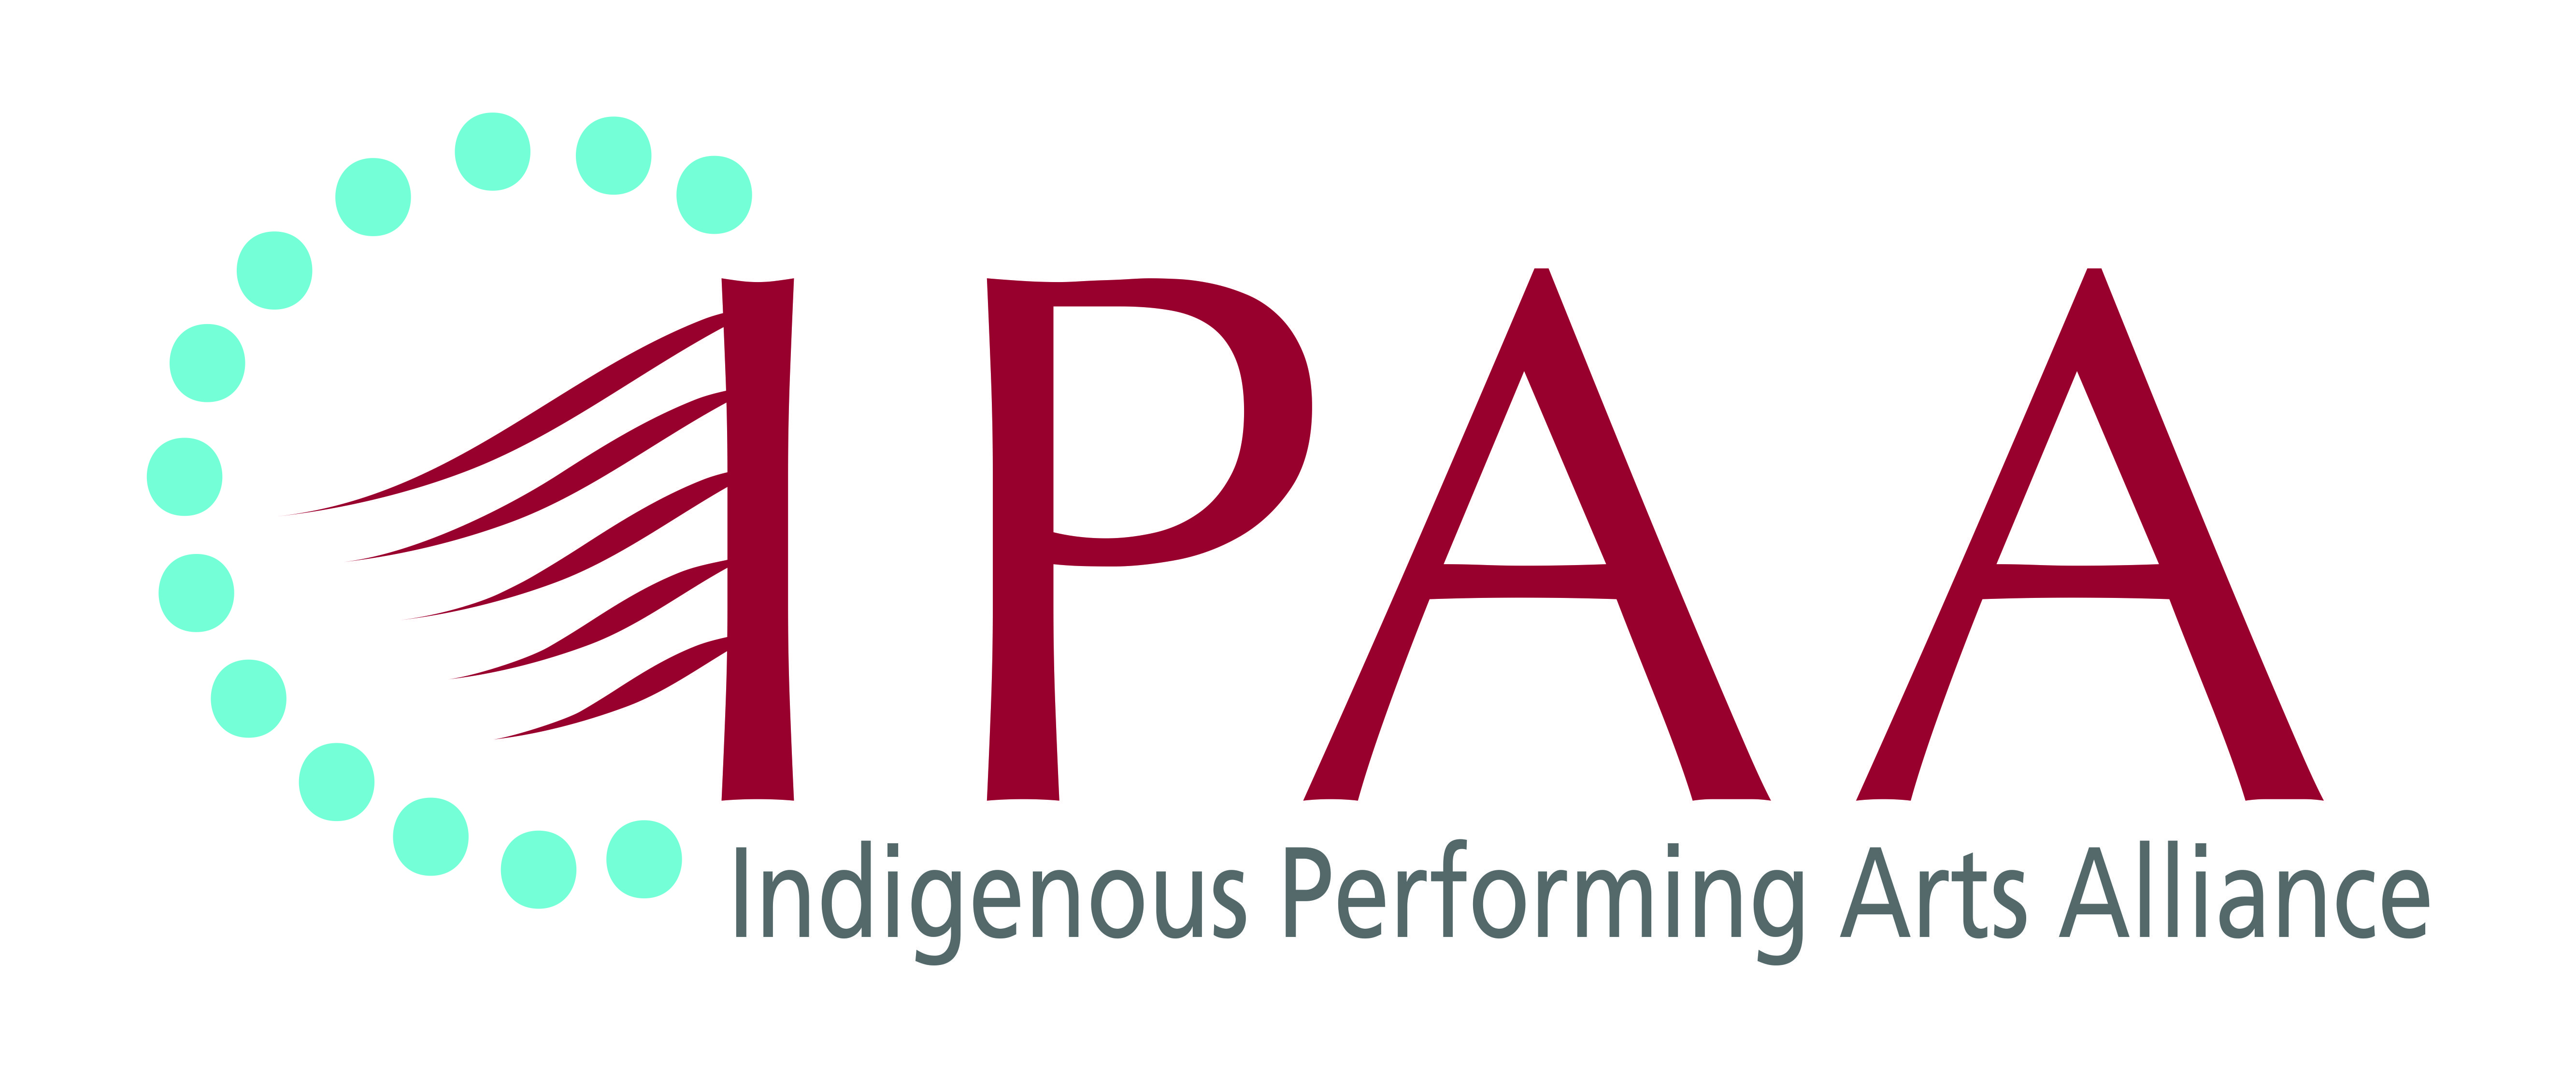 Indigenous Performing Arts Alliance International Networking Facilitation at the Tri-Nations Symposium